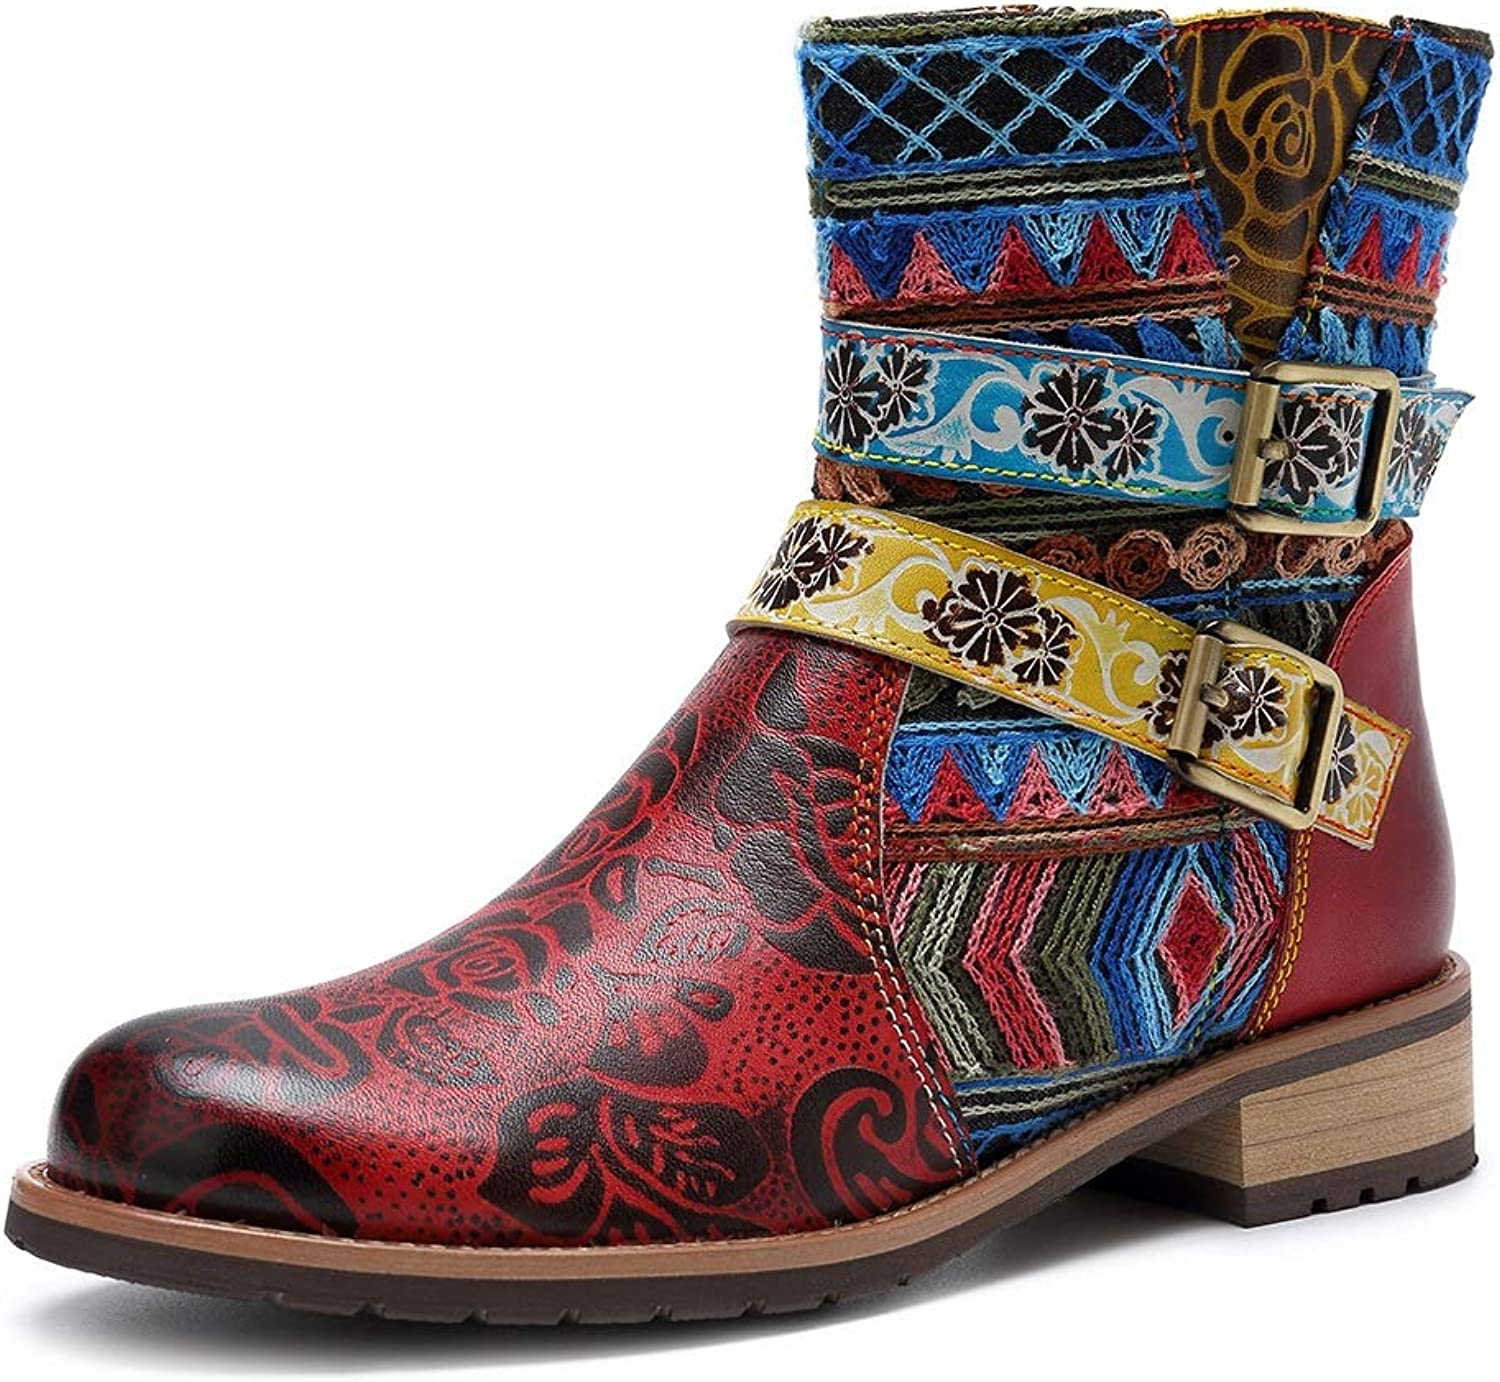 Women's Boots Retro Ethnic Style Leather Contrast color with Denim Skirt (color   Red, Size   7US)